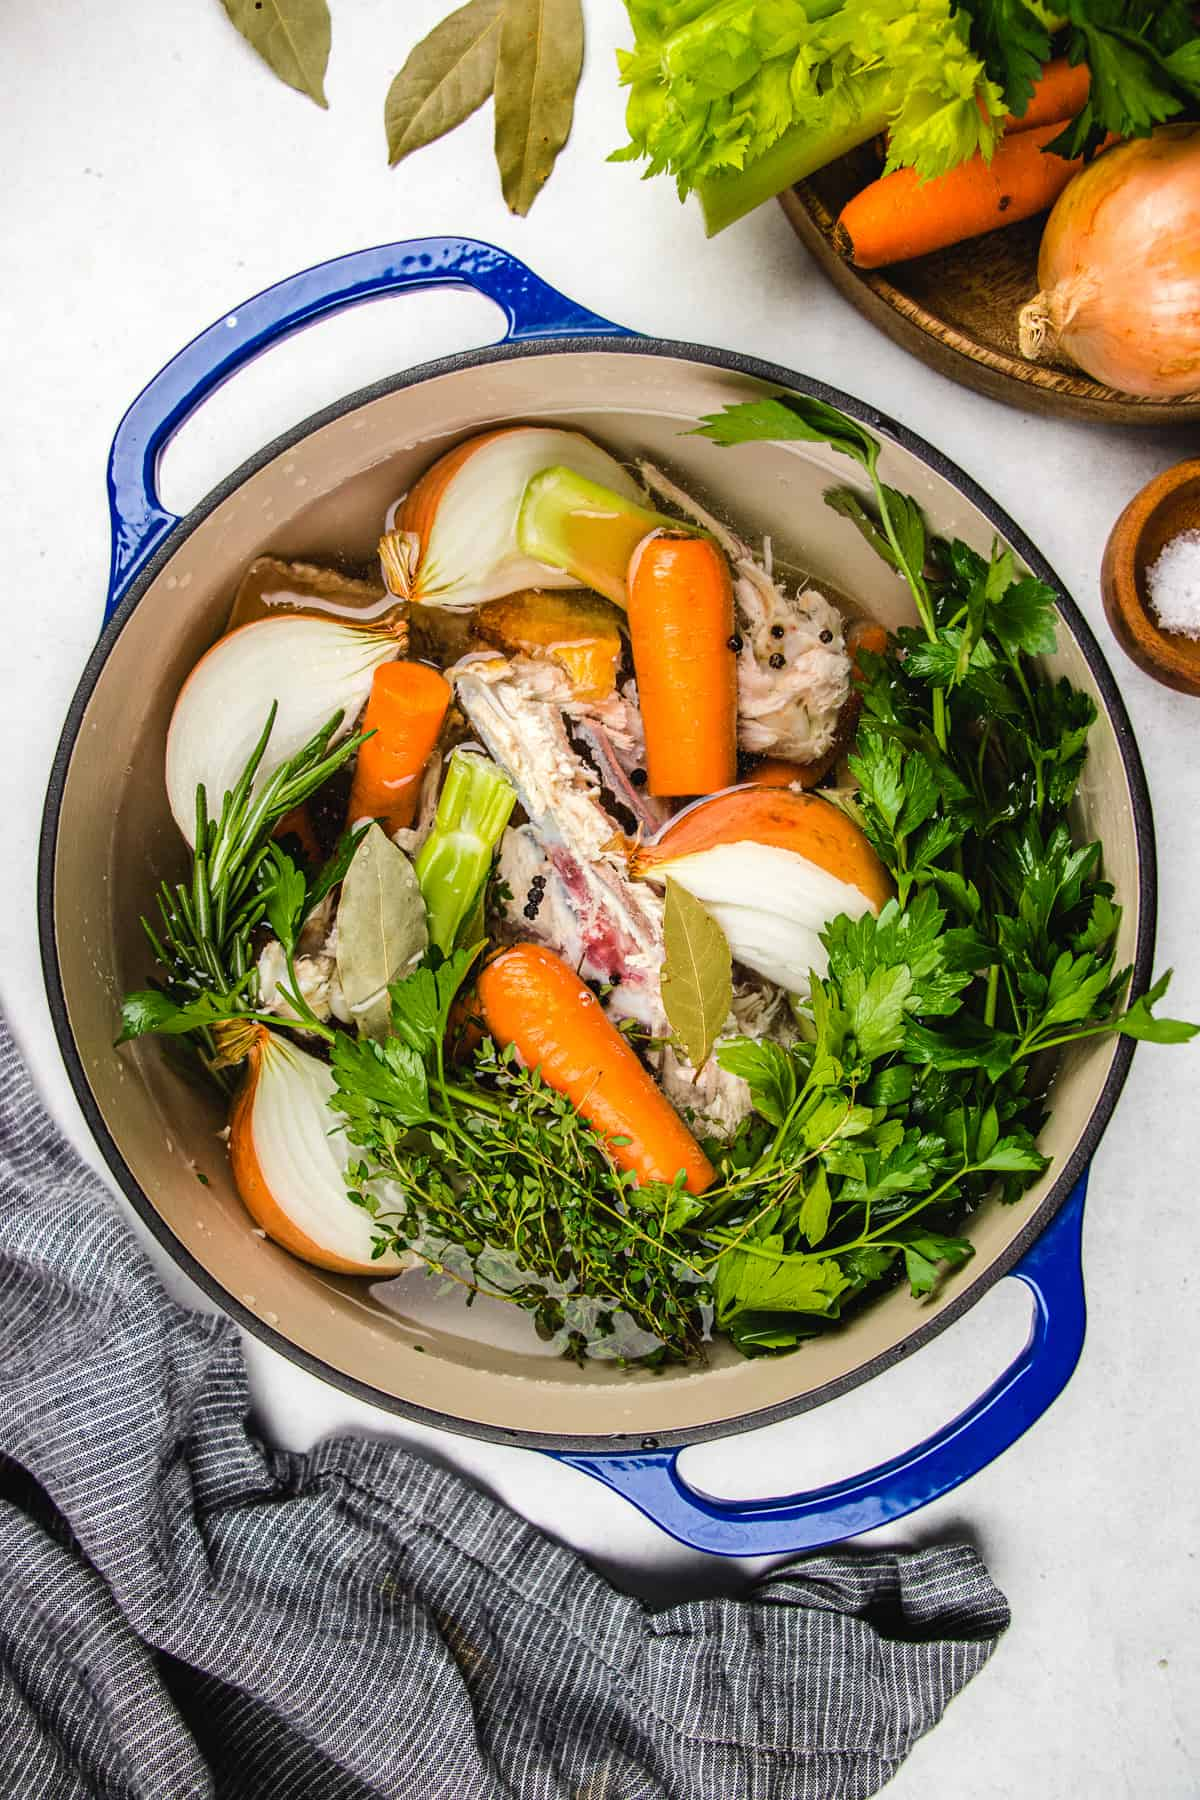 Chicken carcass, chopped onion, carrots, celery, parsley in a blue pot.